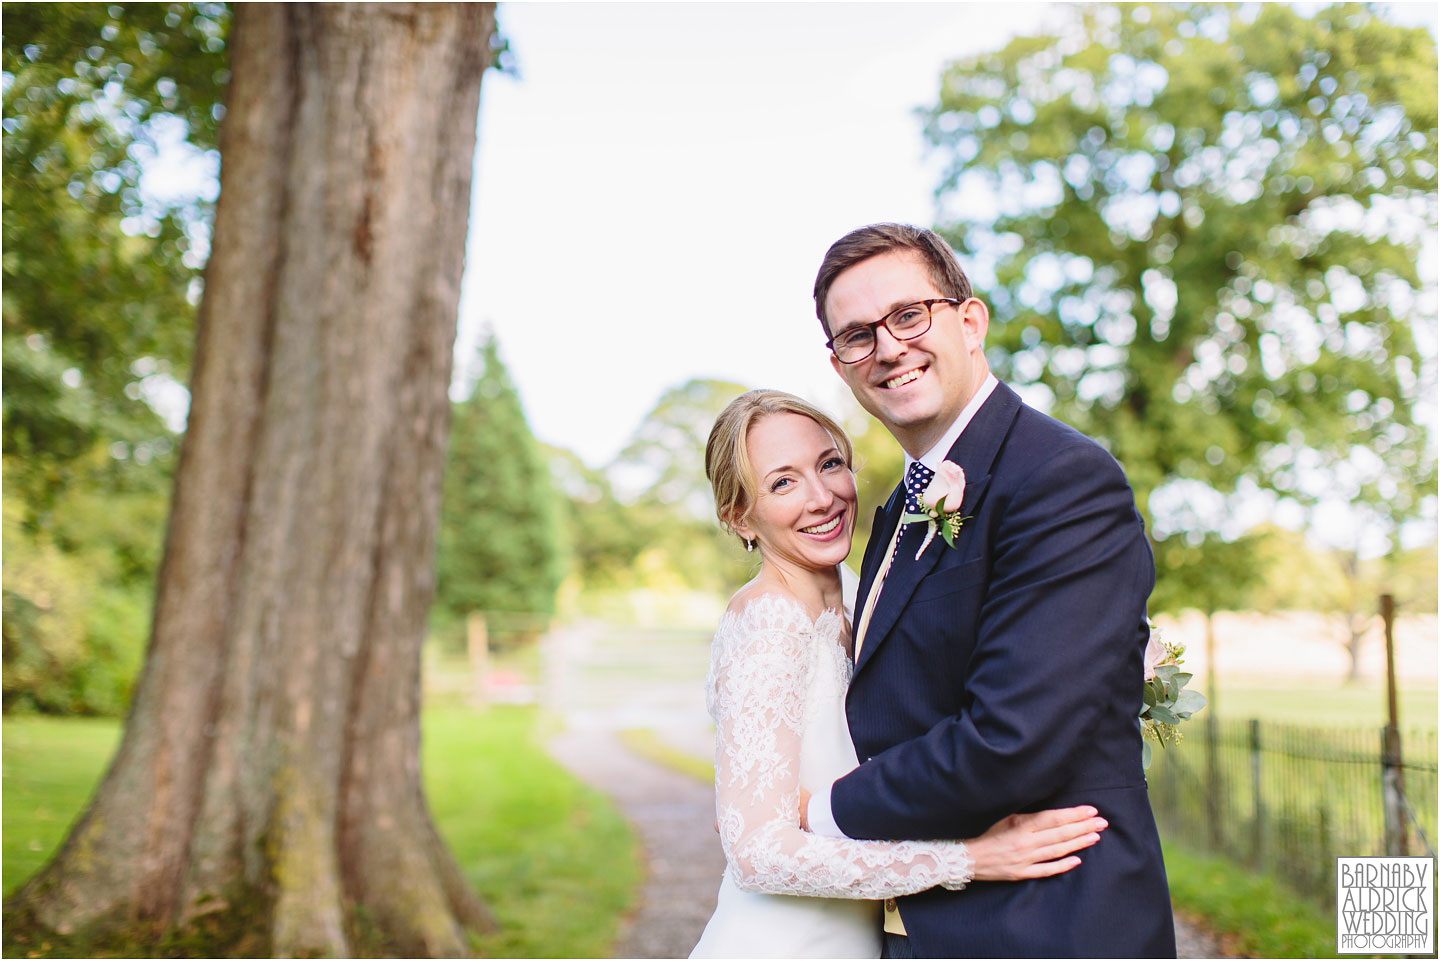 Denton Hall Wedding Photography, Ilkley Wedding Photographer